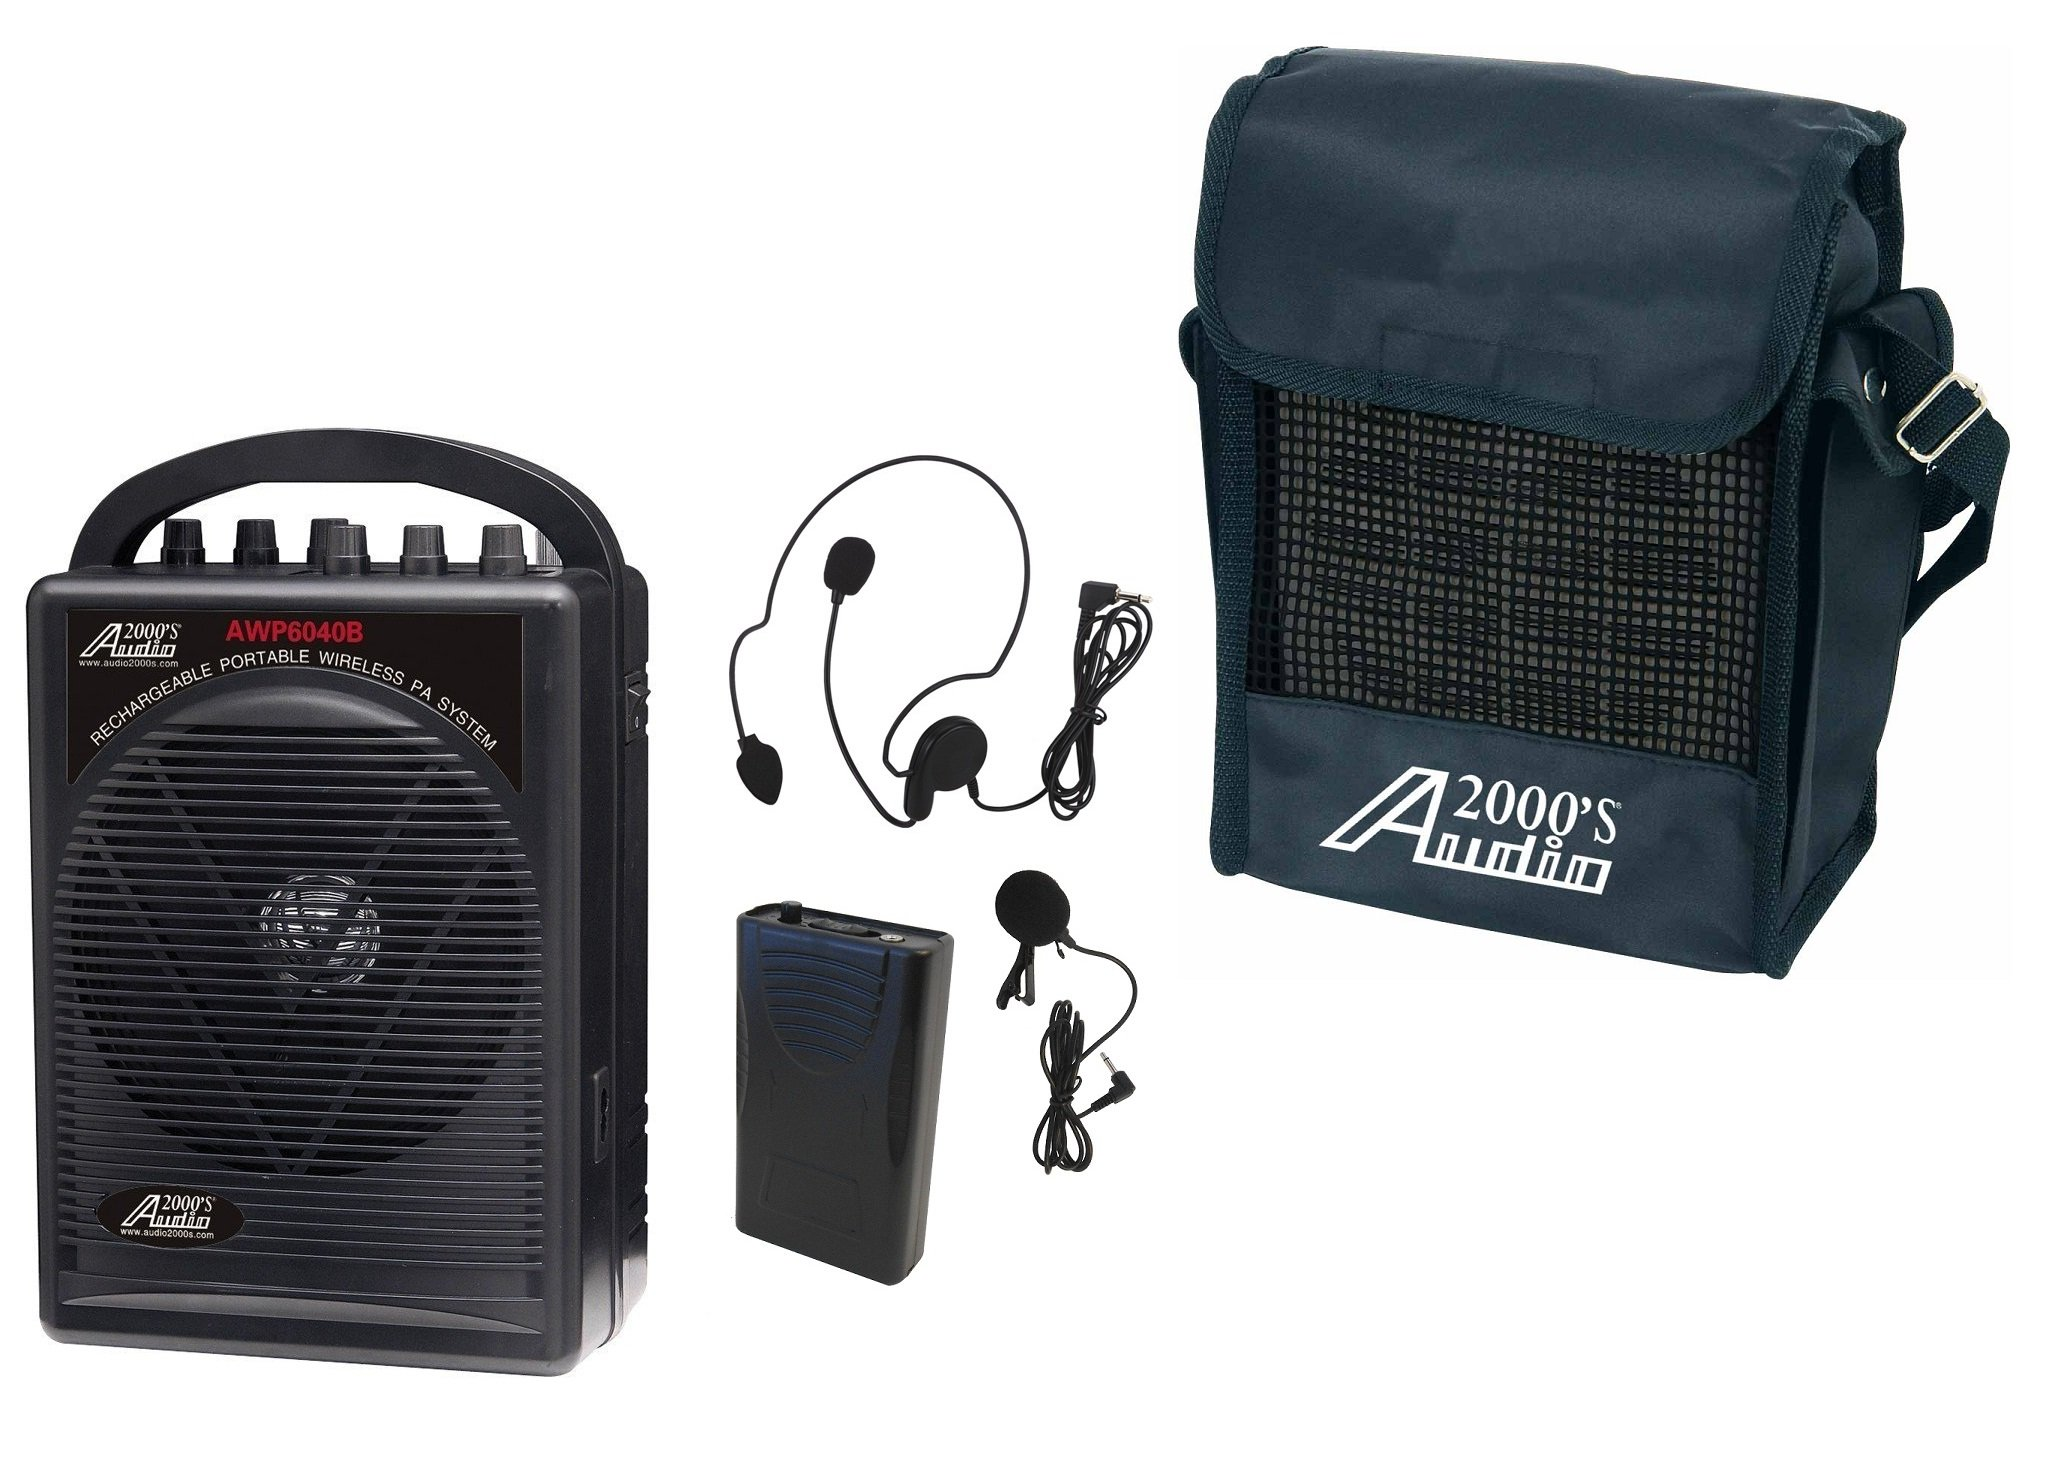 Audio2000'S AWP6040B-M Portable, Rechargeable PA System, Black